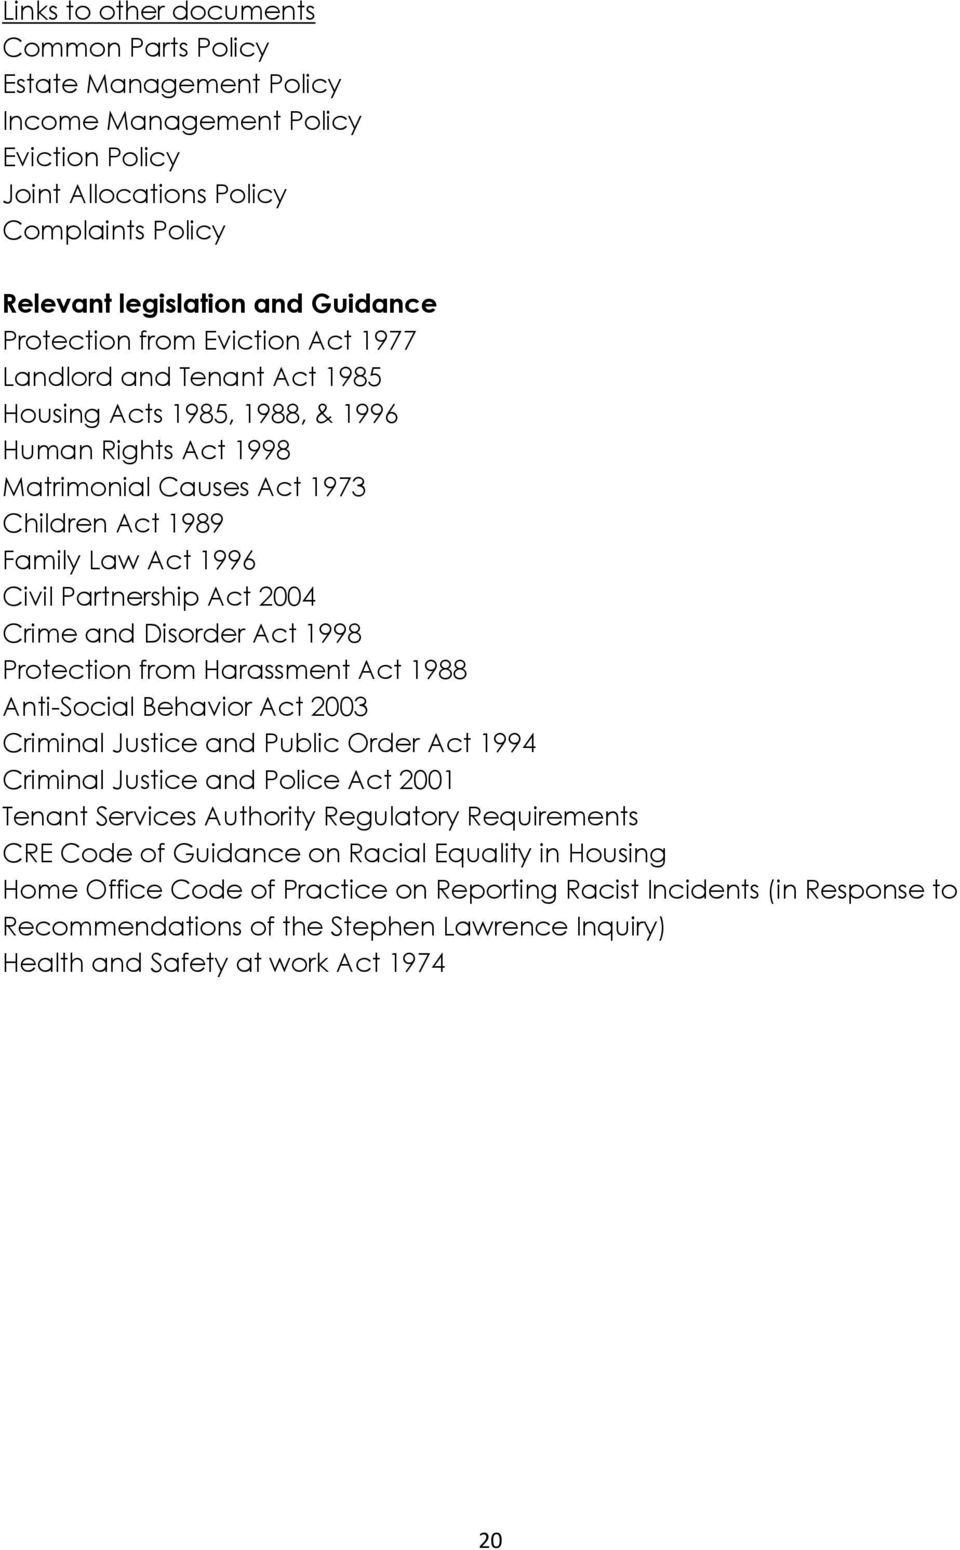 Crime and Disorder Act 1998 Protection from Harassment Act 1988 Anti-Social Behavior Act 2003 Criminal Justice and Public Order Act 1994 Criminal Justice and Police Act 2001 Tenant Services Authority